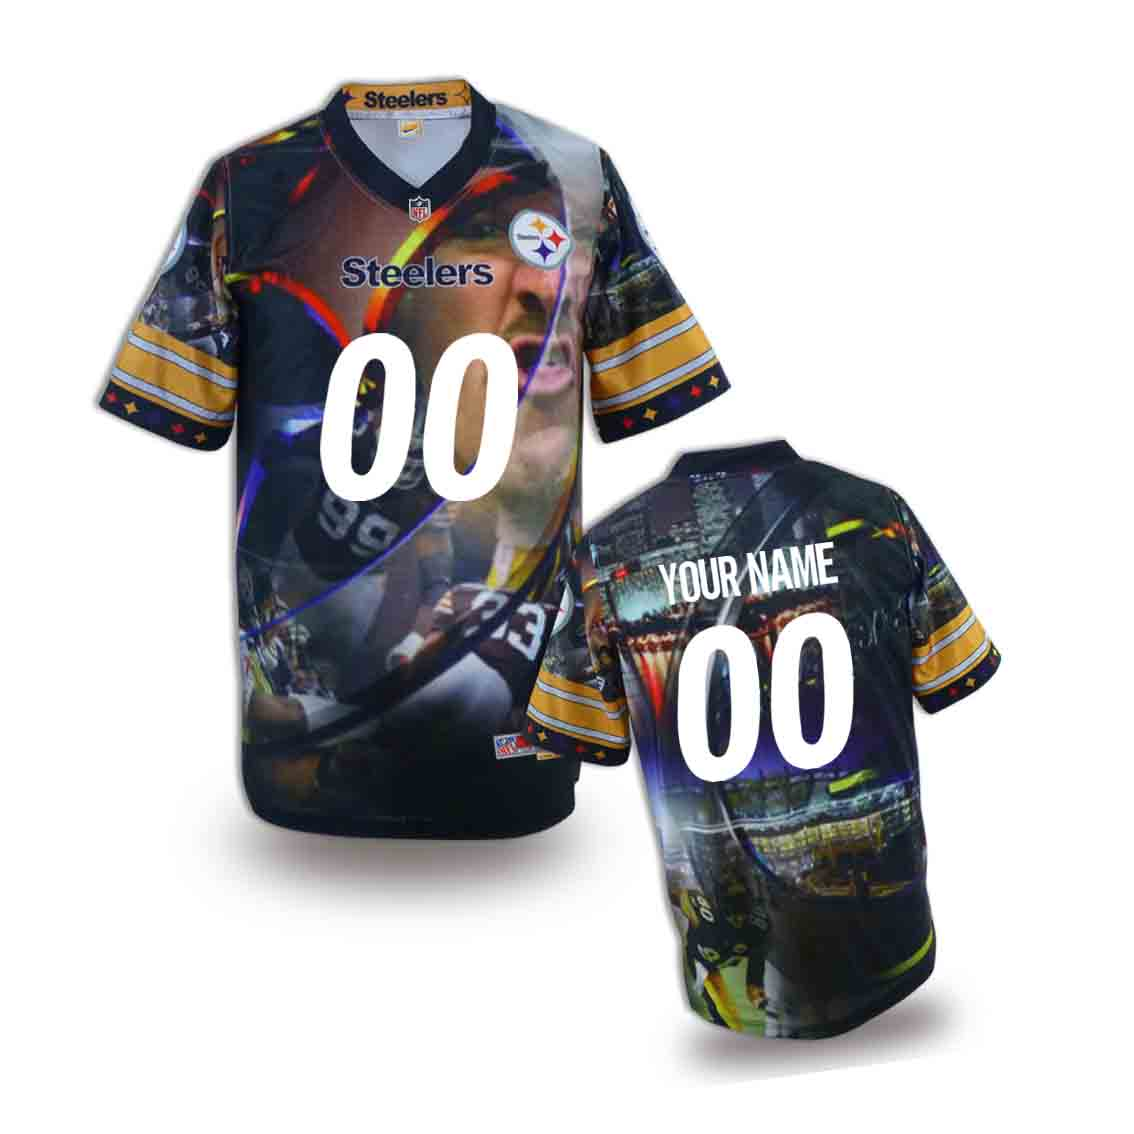 Nike Steelers Customized Fashion Stitched Youth Jerseys02